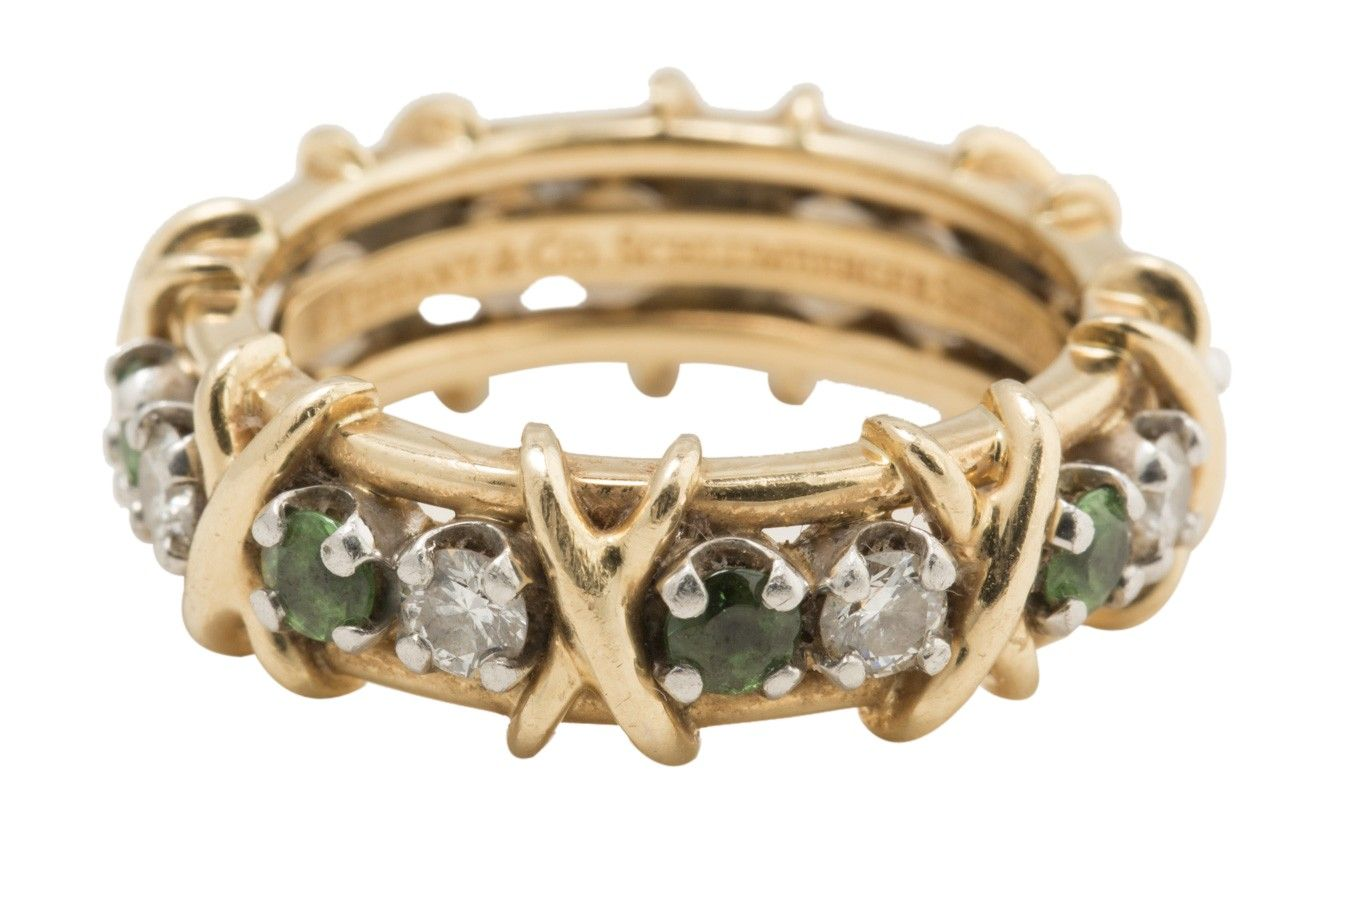 Tiffany & Co. Schlumberger 18k Yellow Gold Platinum Diamond and Tsavorite X Ring-Sz. 6 - Tiffany & Co. ring from the Schlumberger collection featuring 16 stones- 8 round brilliant diamonds totaling .65 carats and 8 tsavorites totaling .59 carats set in platinum on an 18k yellow gold band with 18k yellow gold X's.%0D%0AThe ring is 7mm wide and a size 6, it is in excellent condition with light wear.